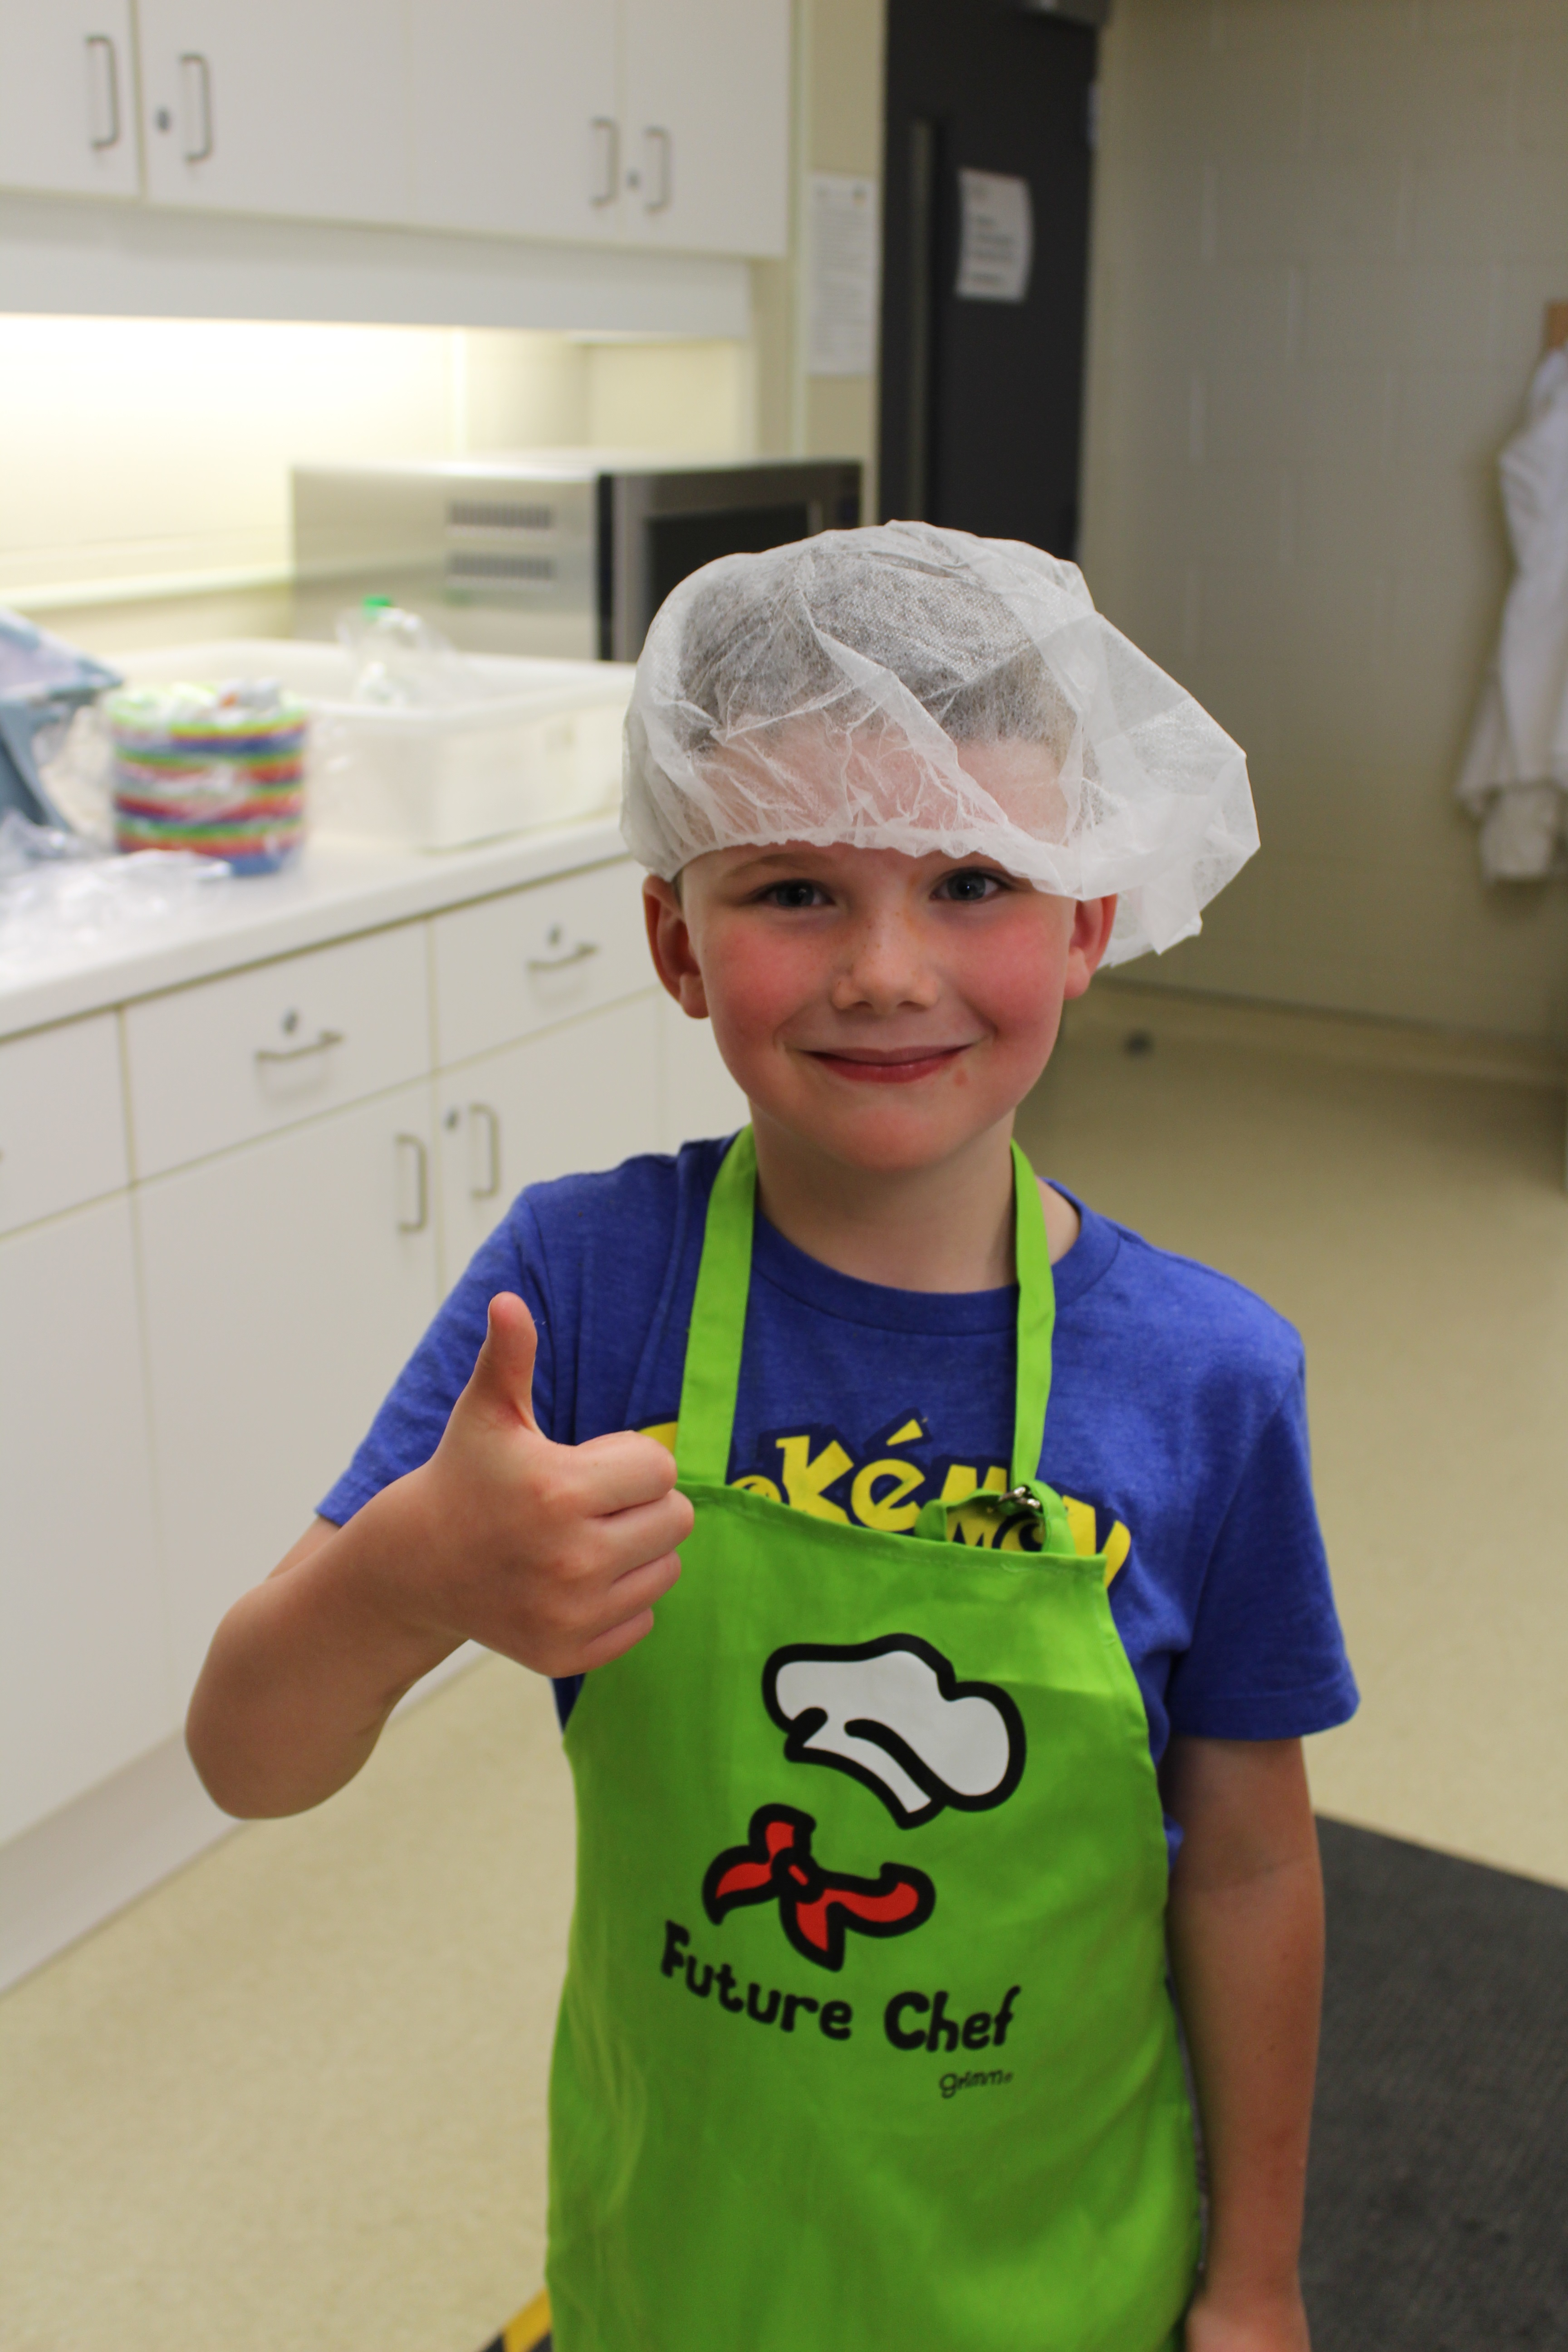 Thumbs up to cooking with kids | Office of Research